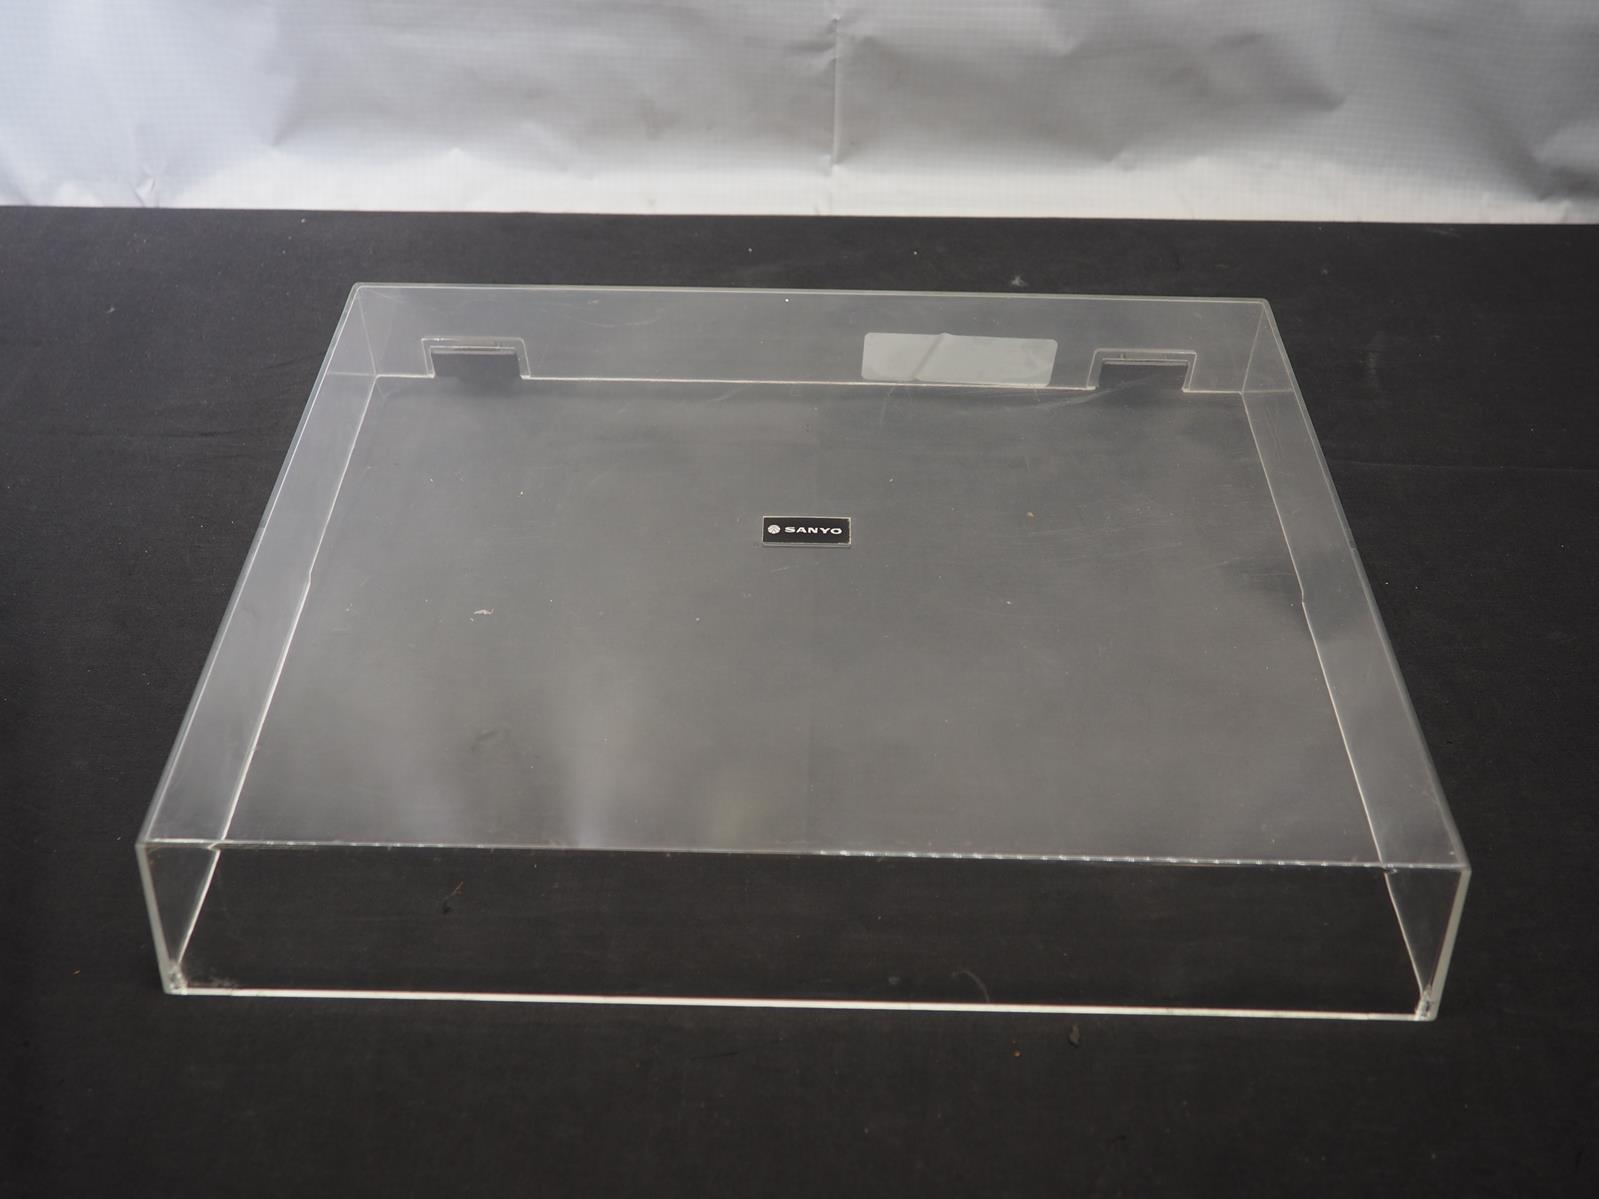 Vintage Sanyo Tpxis Dust Cover For Turntable Record Player